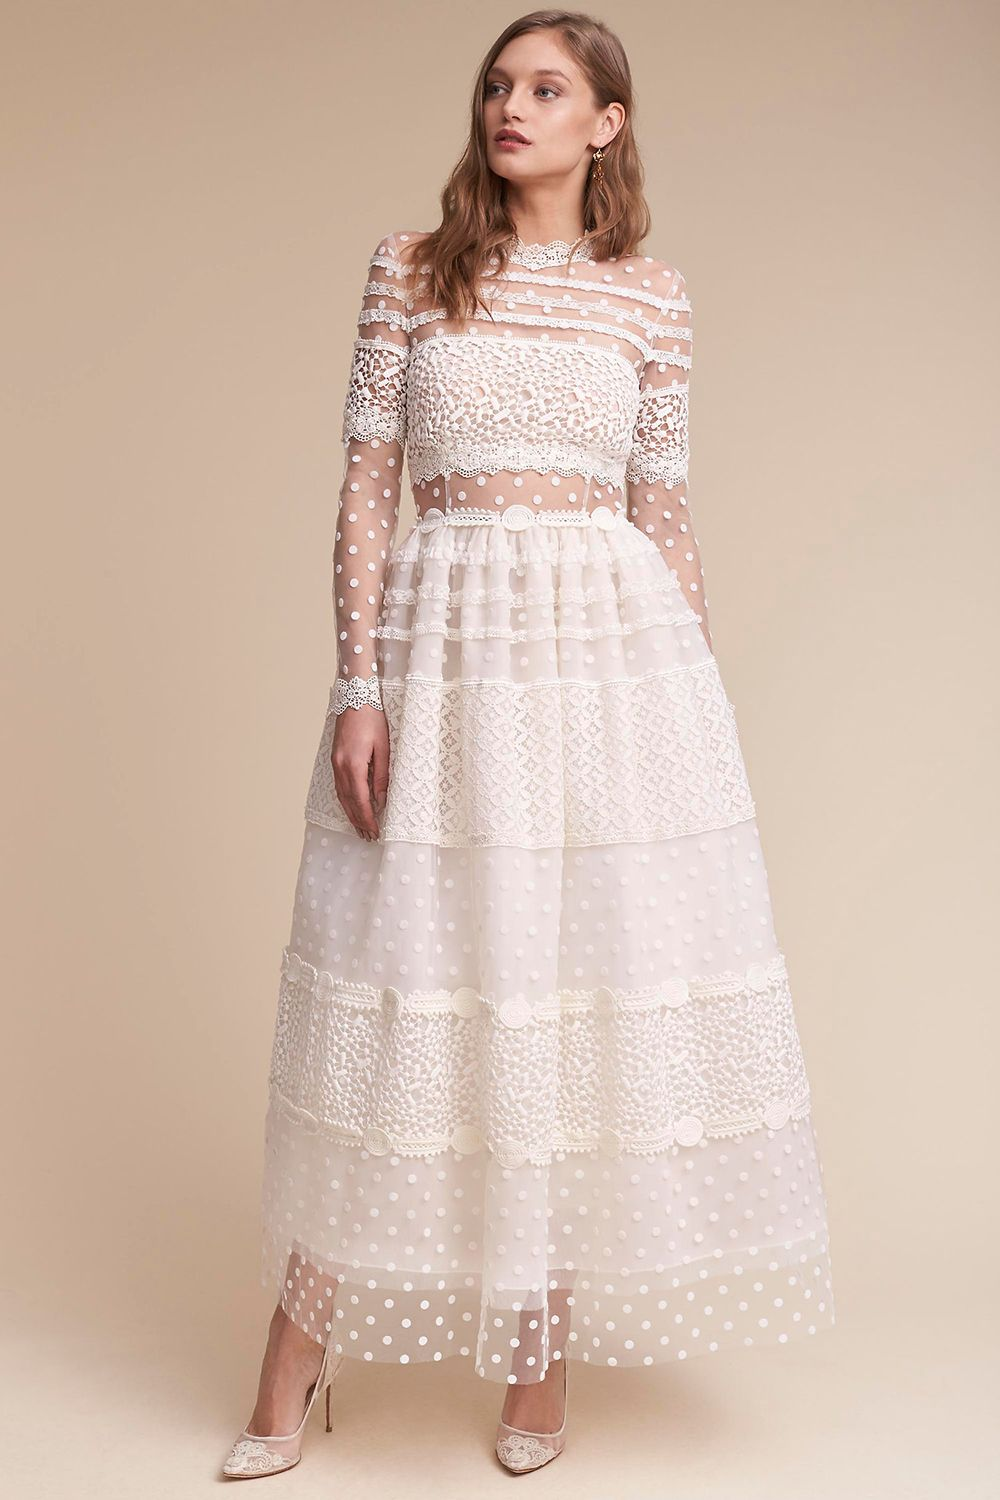 """<p>This Swiss-dot meringue poufof a dress is also called the""""Keaton."""" So you have to get it.</p><p>$3,600, <a href=""""http://www.bhldn.com/shop-the-bride-wedding-dresses/keaton-gown/productOptionIDS/fbcaeb8b-b90b-4e9a-9313-32da085940dd"""" target=""""_blank"""" data-tracking-id=""""recirc-text-link"""">bhldn.com</a>.</p>"""